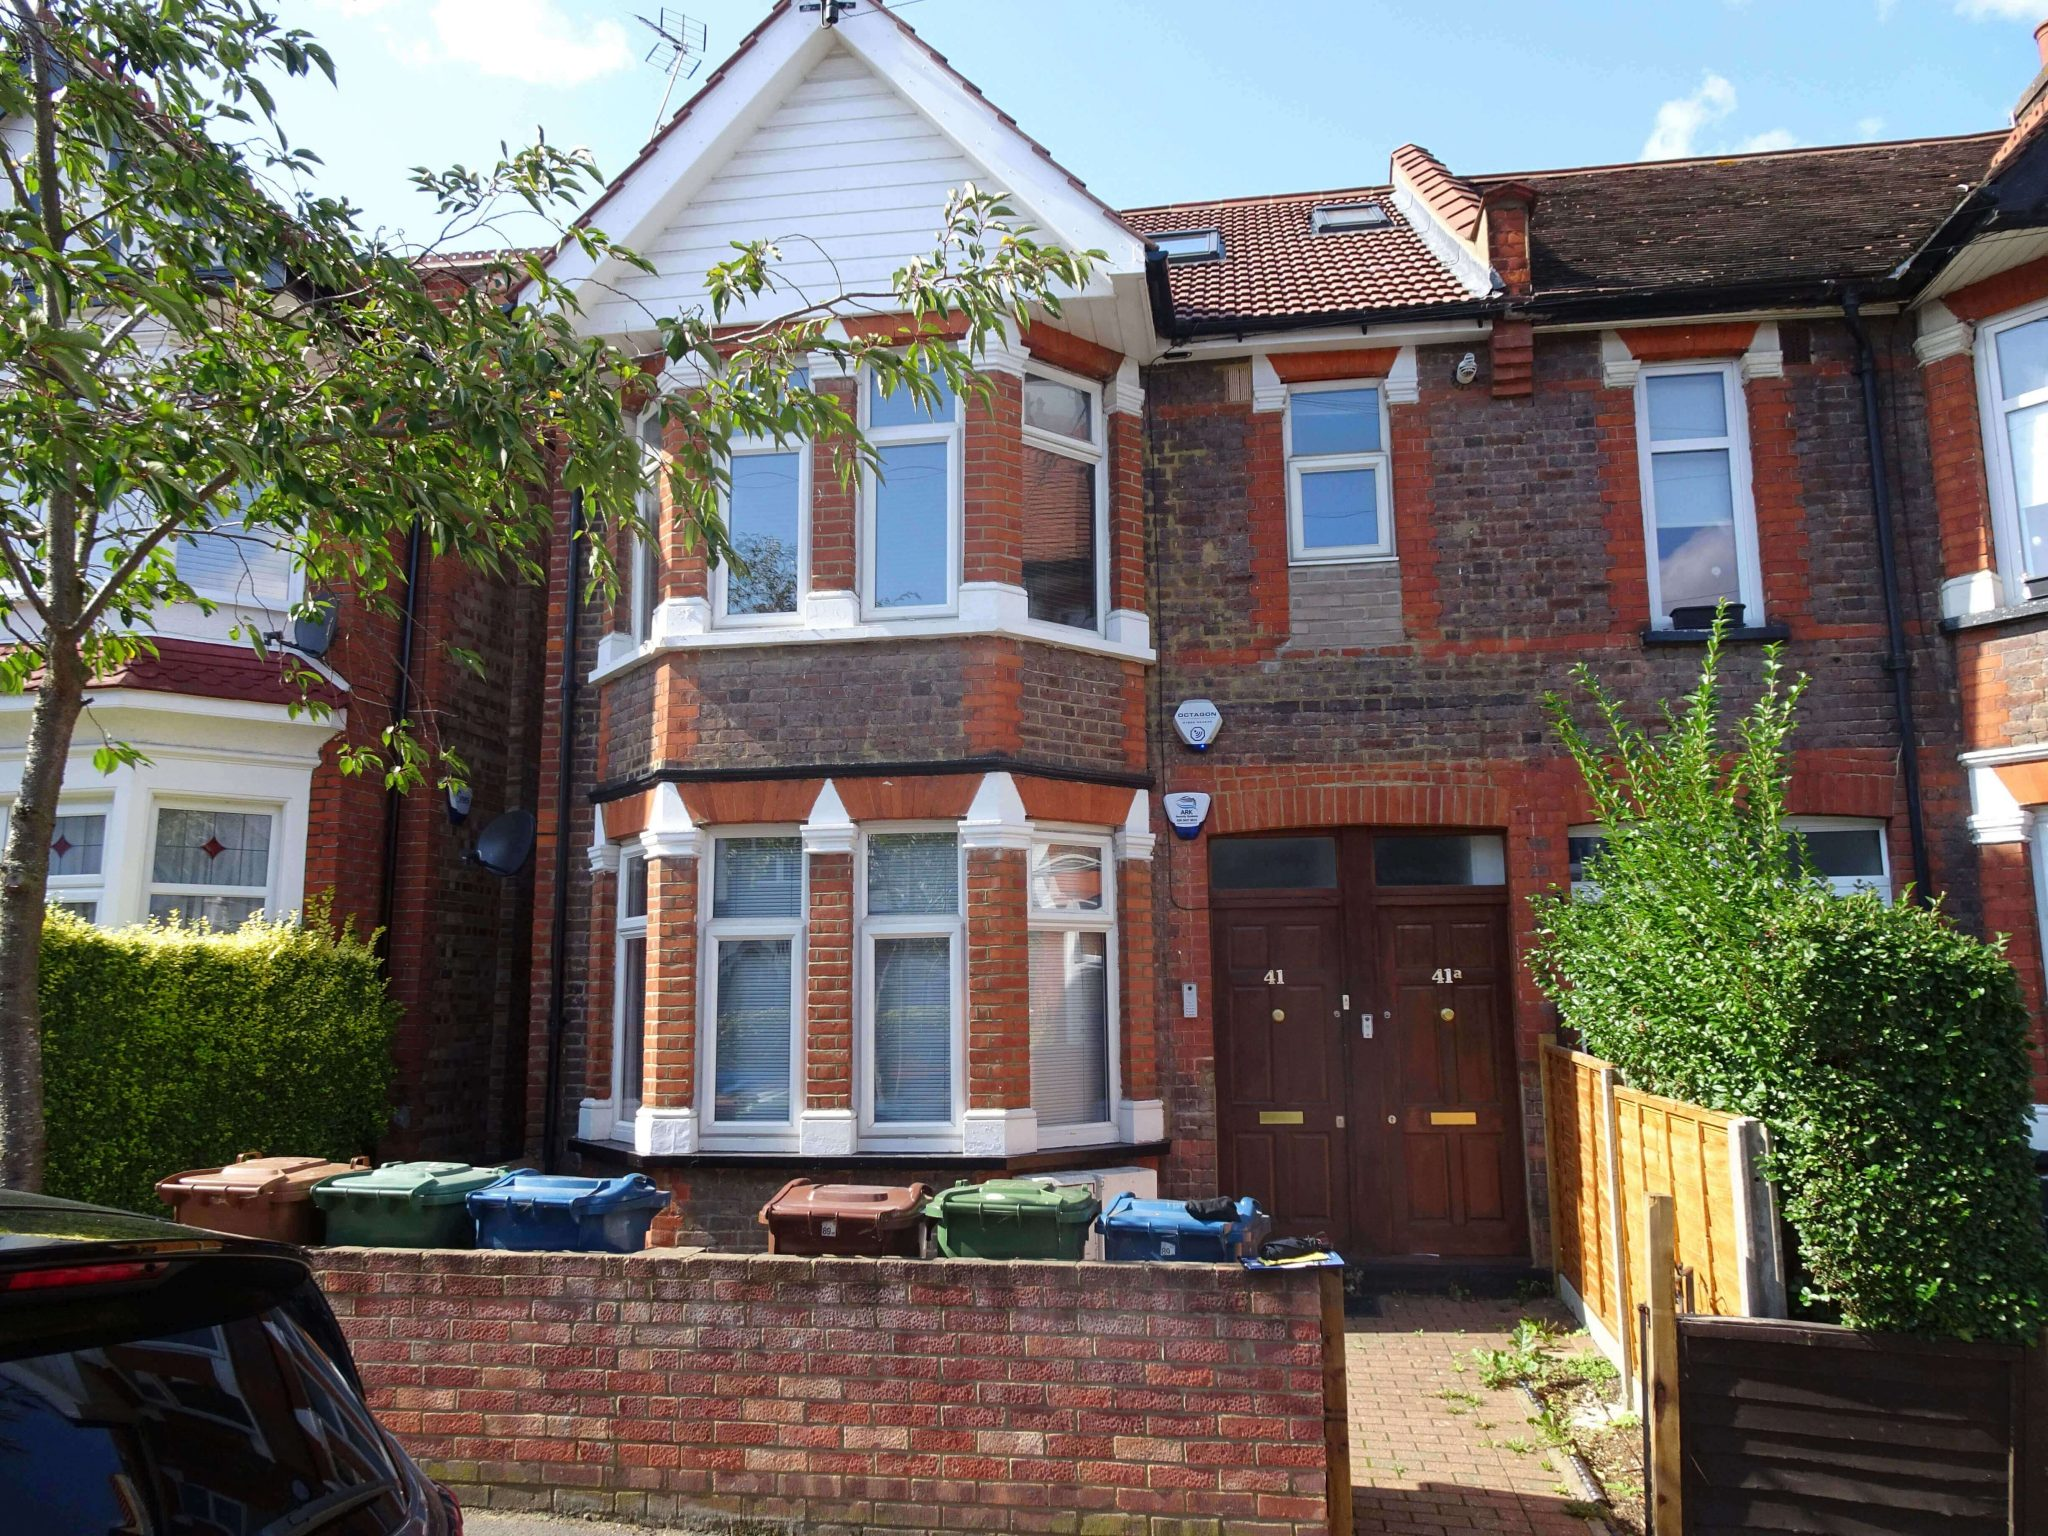 4 bed flat to rent - Oxford Road, Harrow HA1